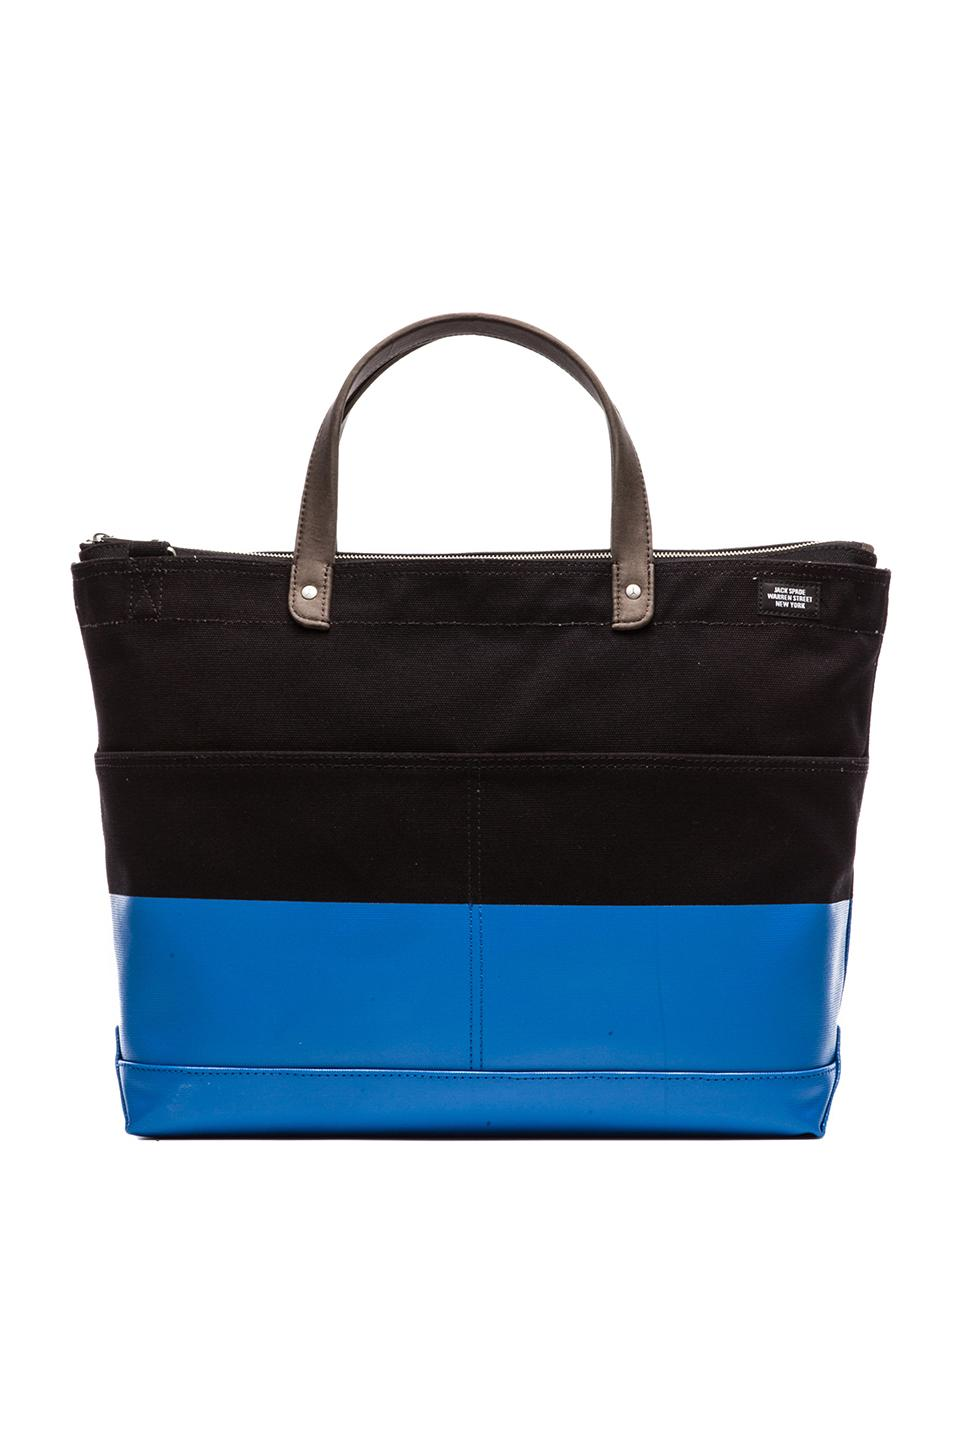 Jack Spade Dipped Industrial Carpenter Bag in Black & Bright Blue